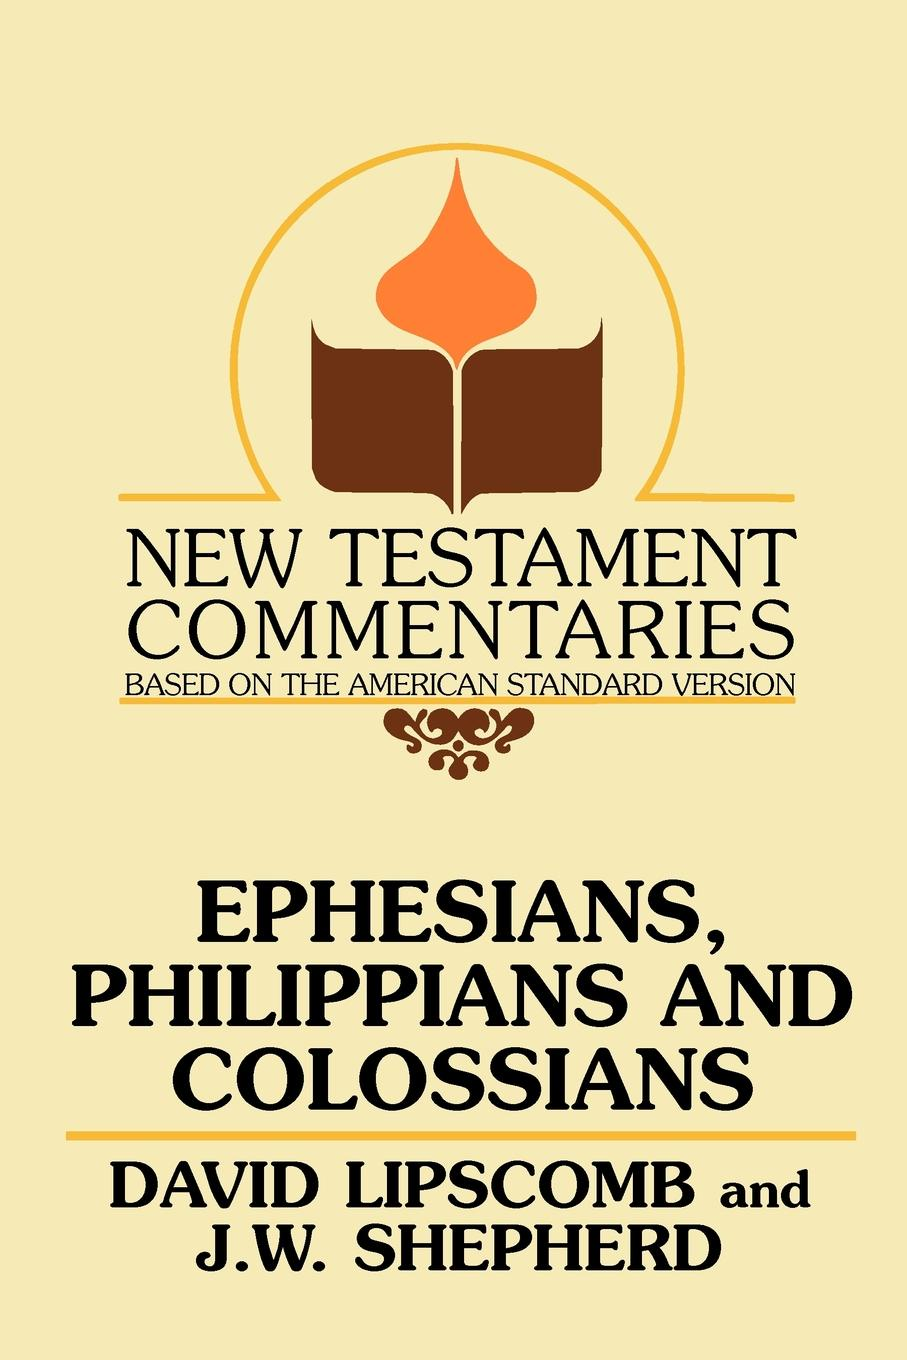 David Lipscomb, J. W. Shepherd, J W Shepherd Ephesians, Philippians, and Colossians